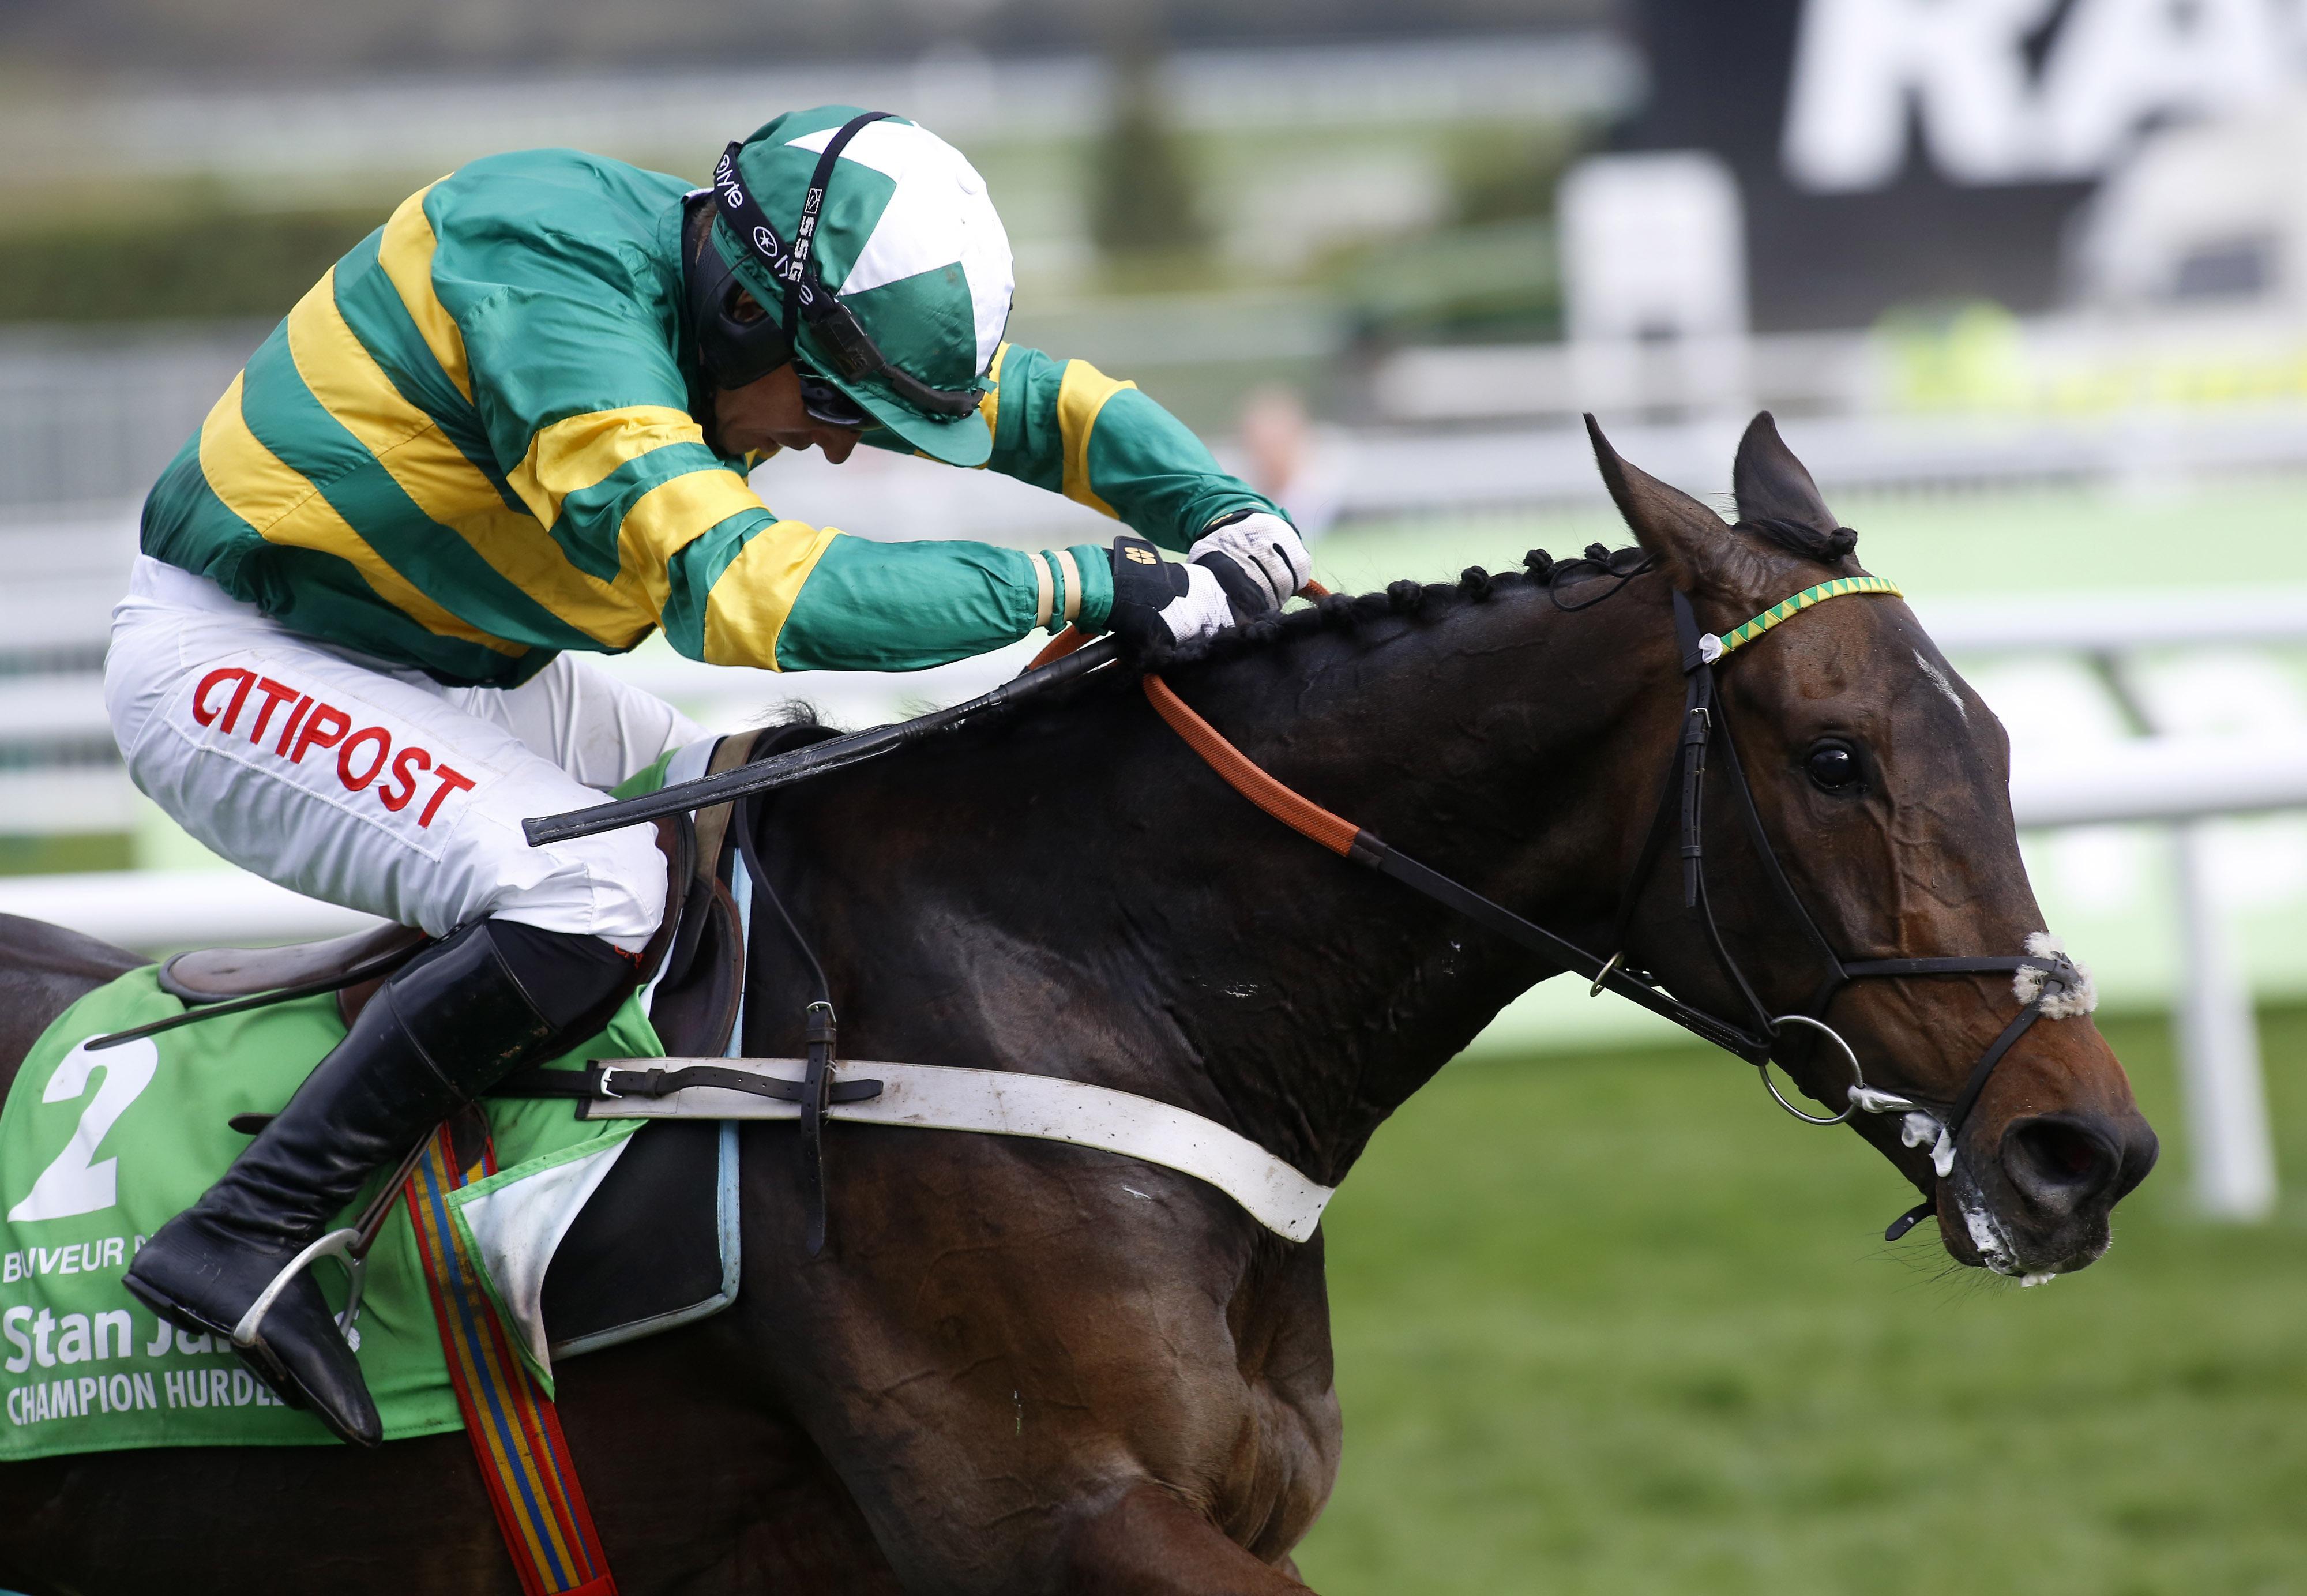 Buveur D'Air and Noel Fehily lead the field to the finish line to win The Stan James Champion Hurdle Race during Champion Day of the 2017 Cheltenham Festival of horse racing at Cheltenham Racecourse, England Tuesday March 14, 2017. (Julian Herbert/PA via